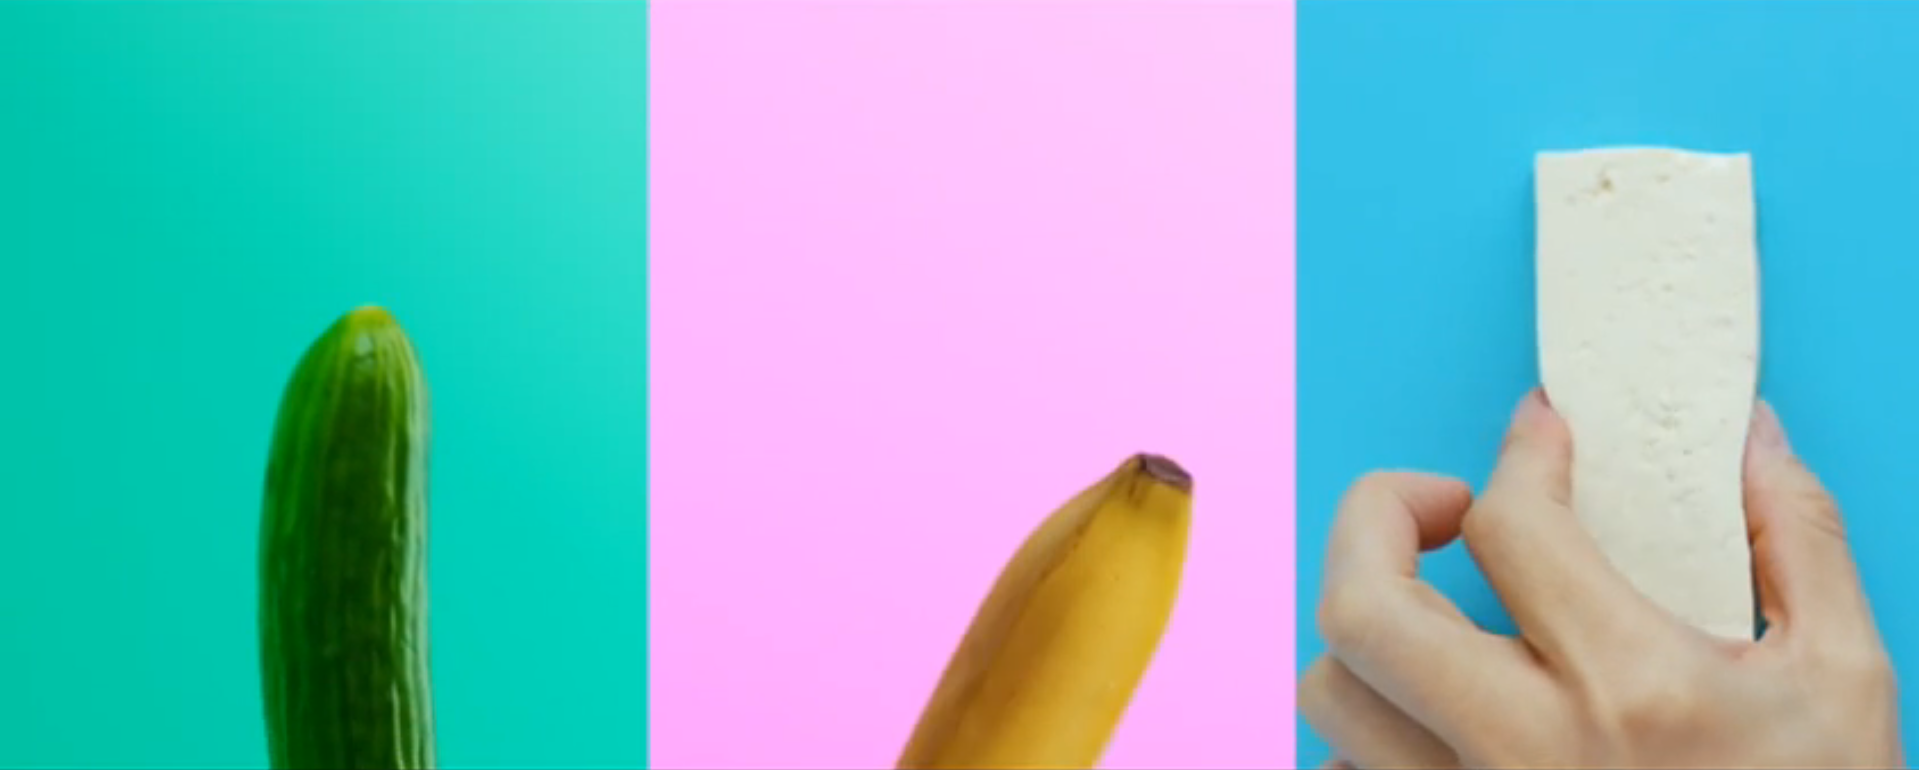 The cucumber the banana or maybe his dick 2